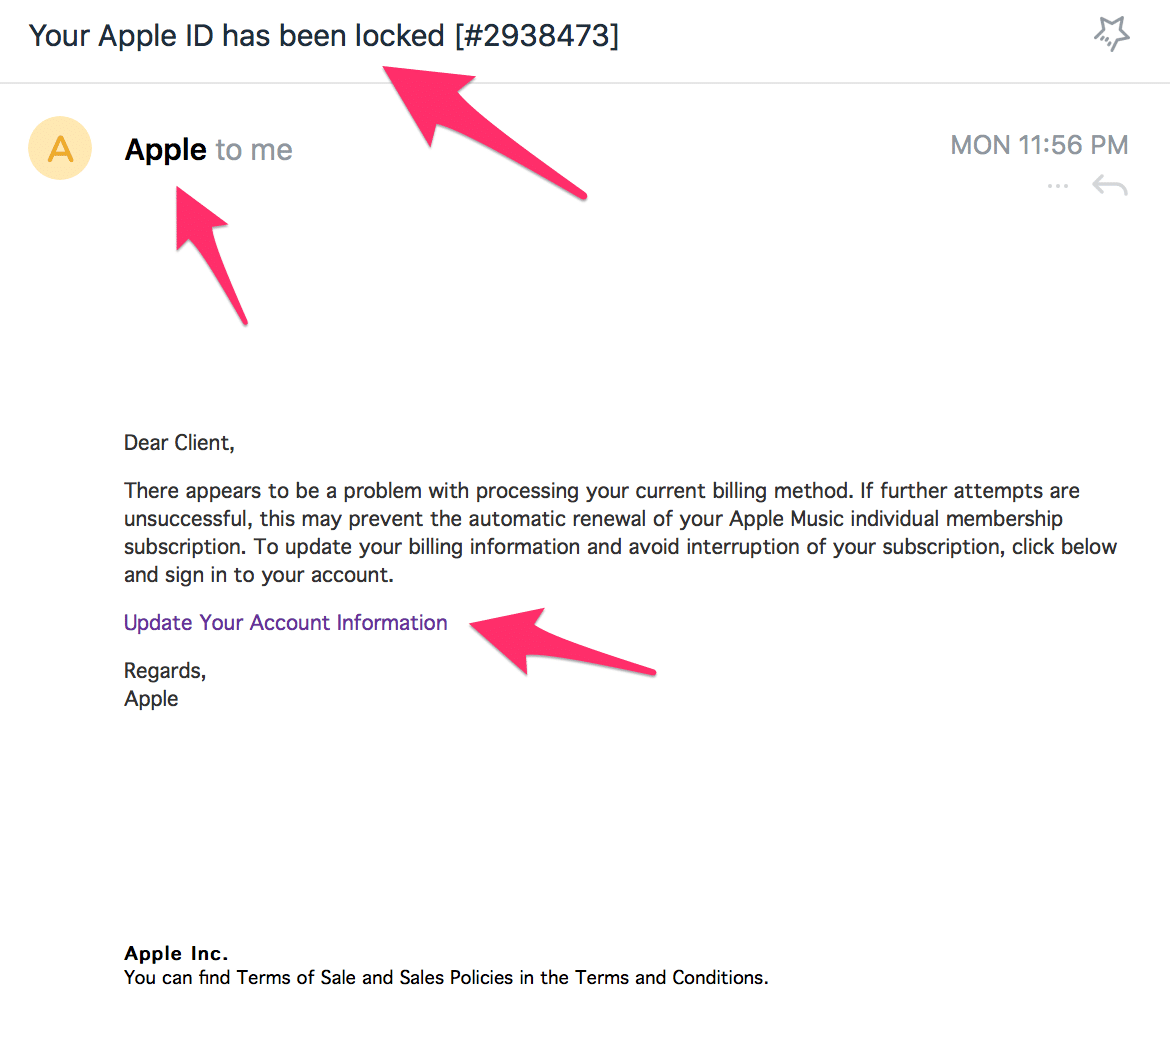 Example of Phishing Attacks Email